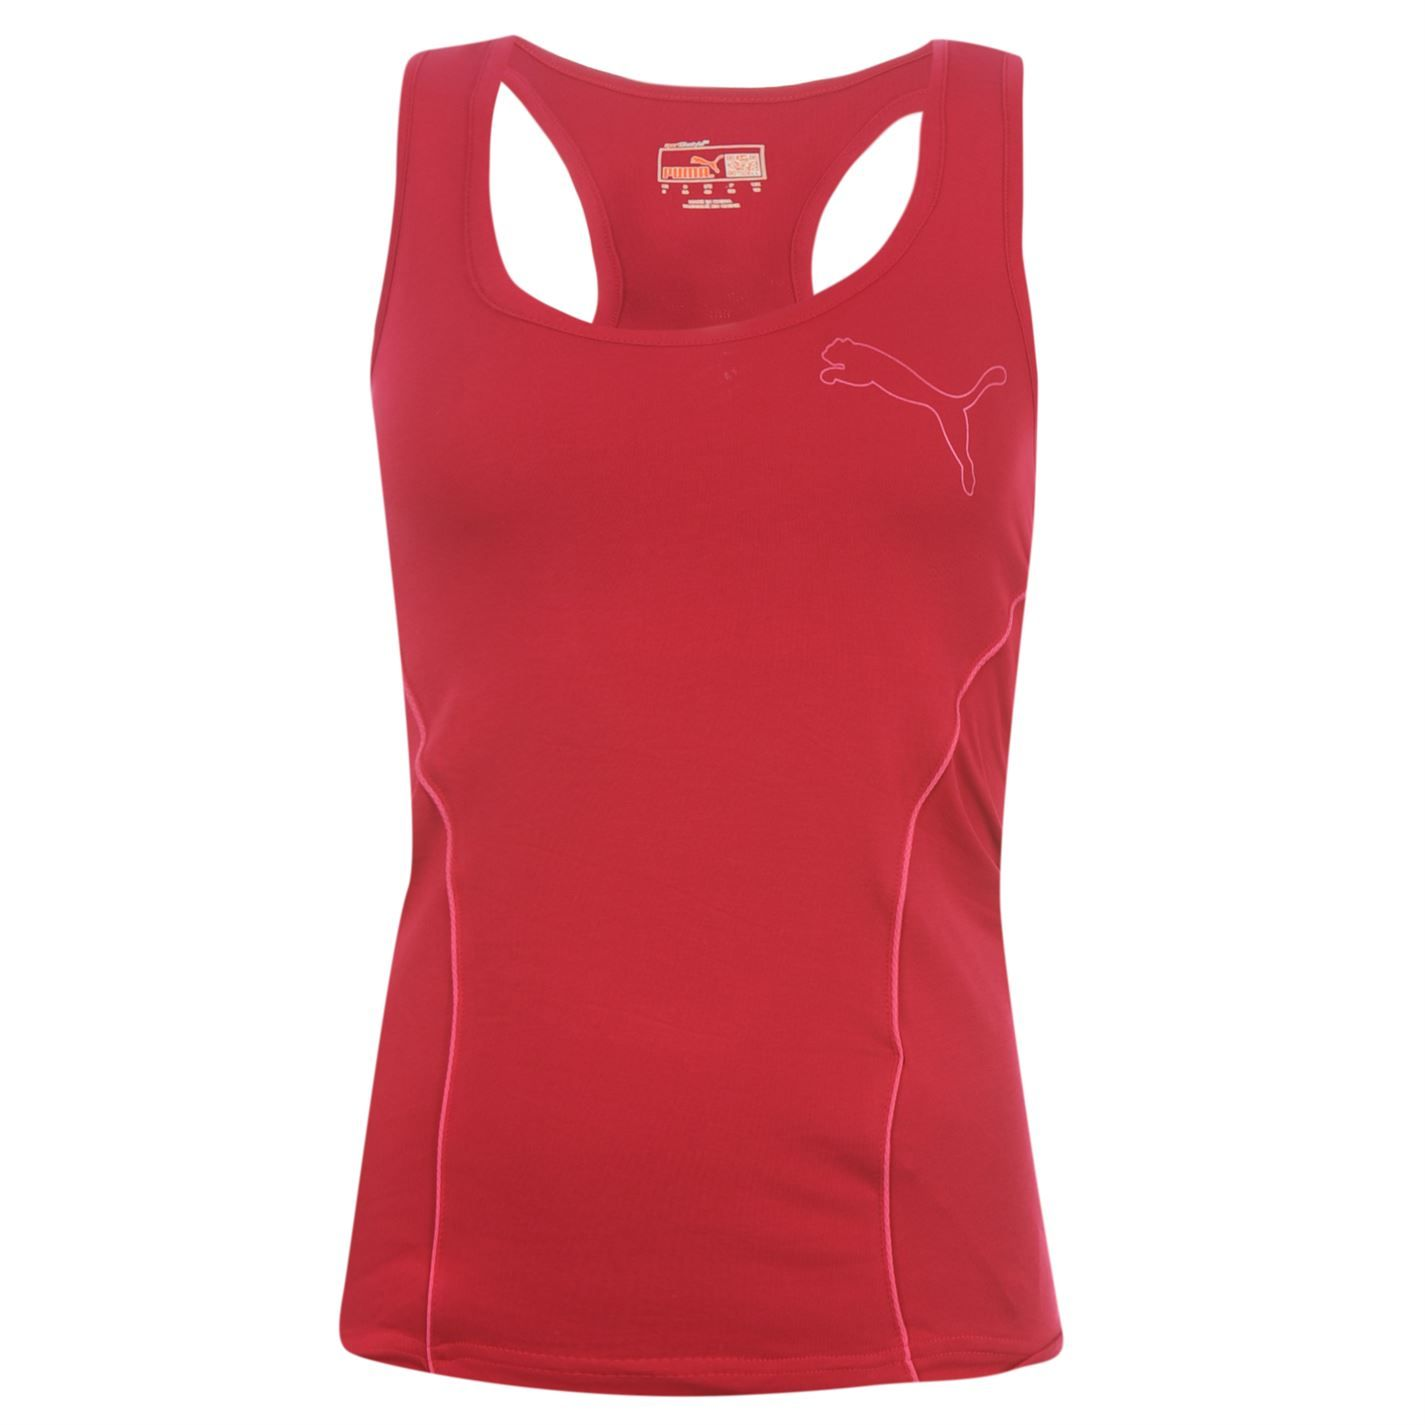 Puma | Puma Essentials Tank Top Ladies | Ladies Sports Bras